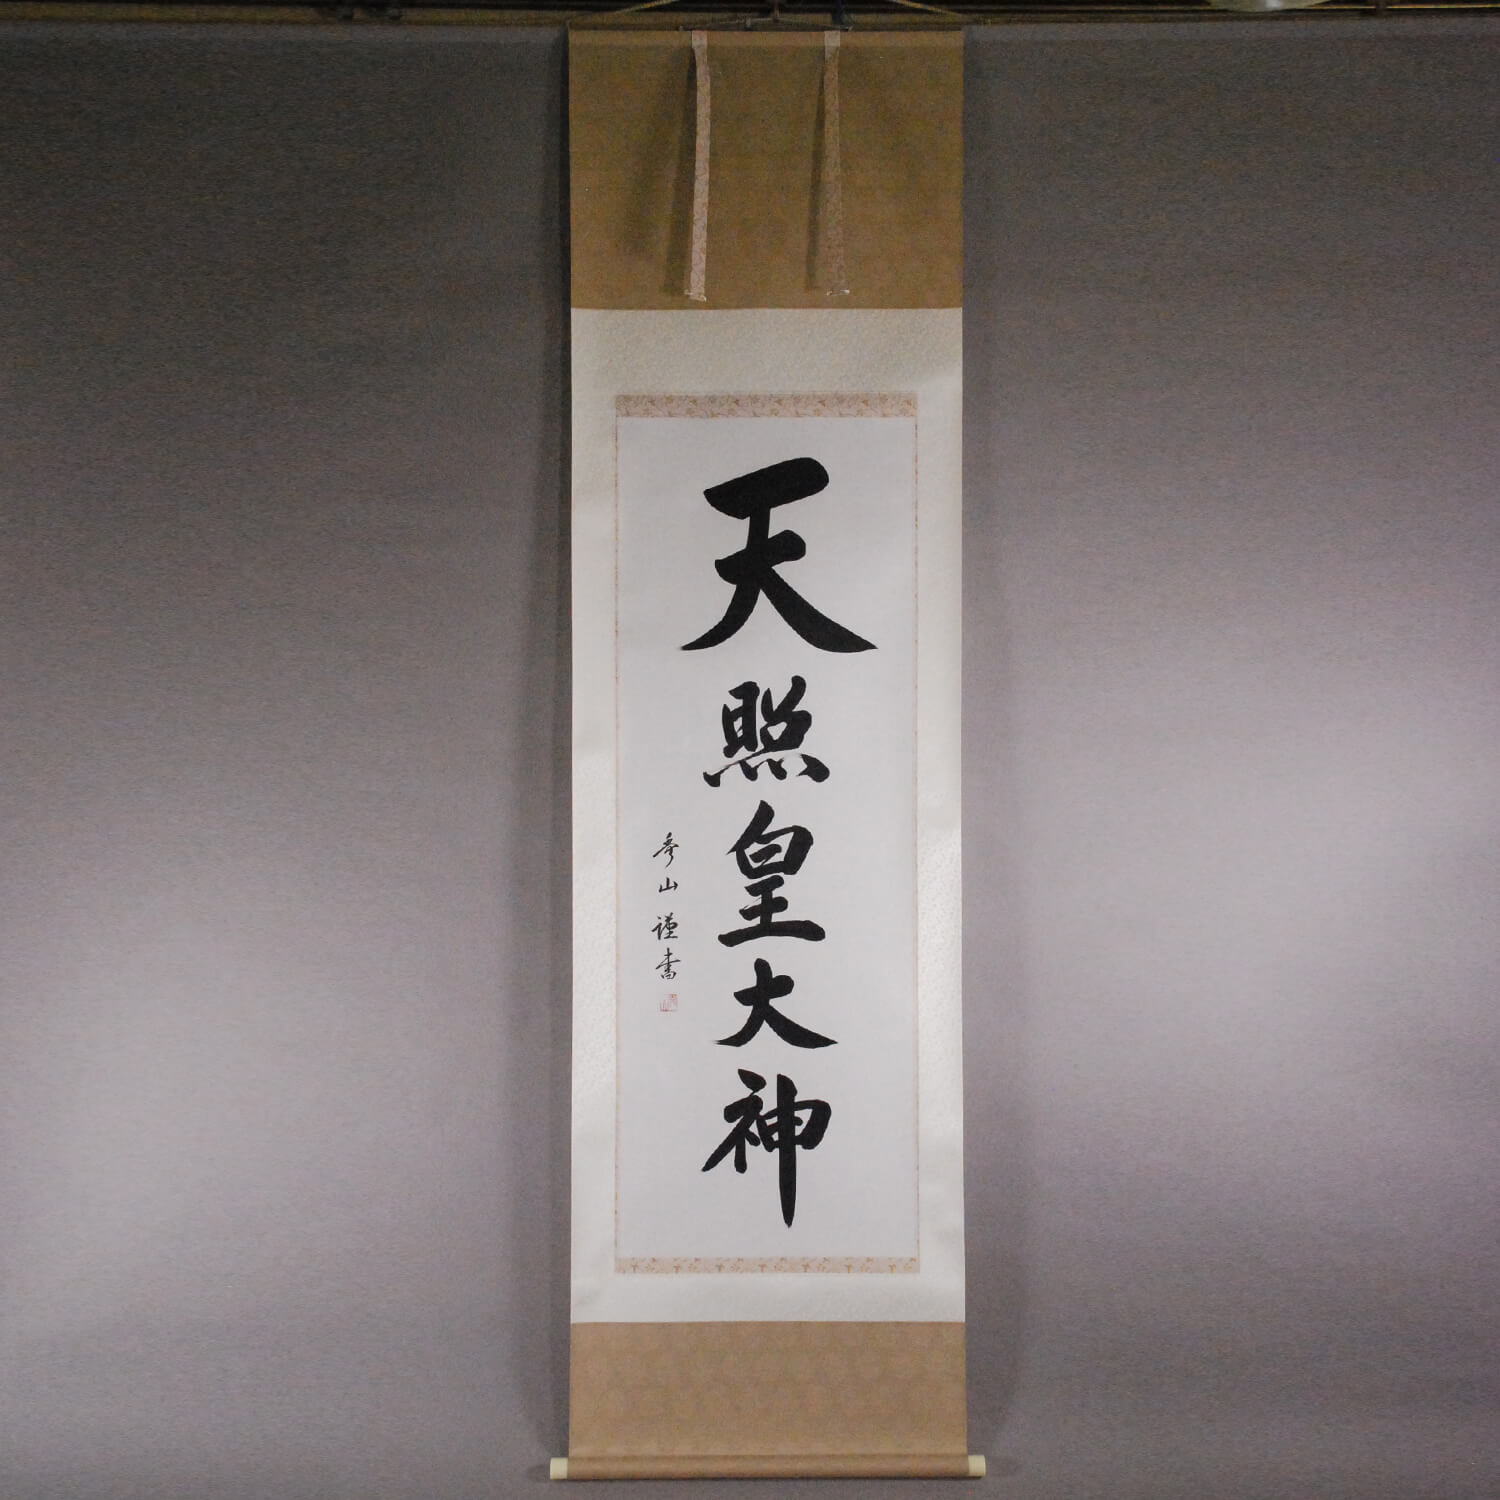 Calligraphy: The Sun Goddess / Shuuzan Ueda